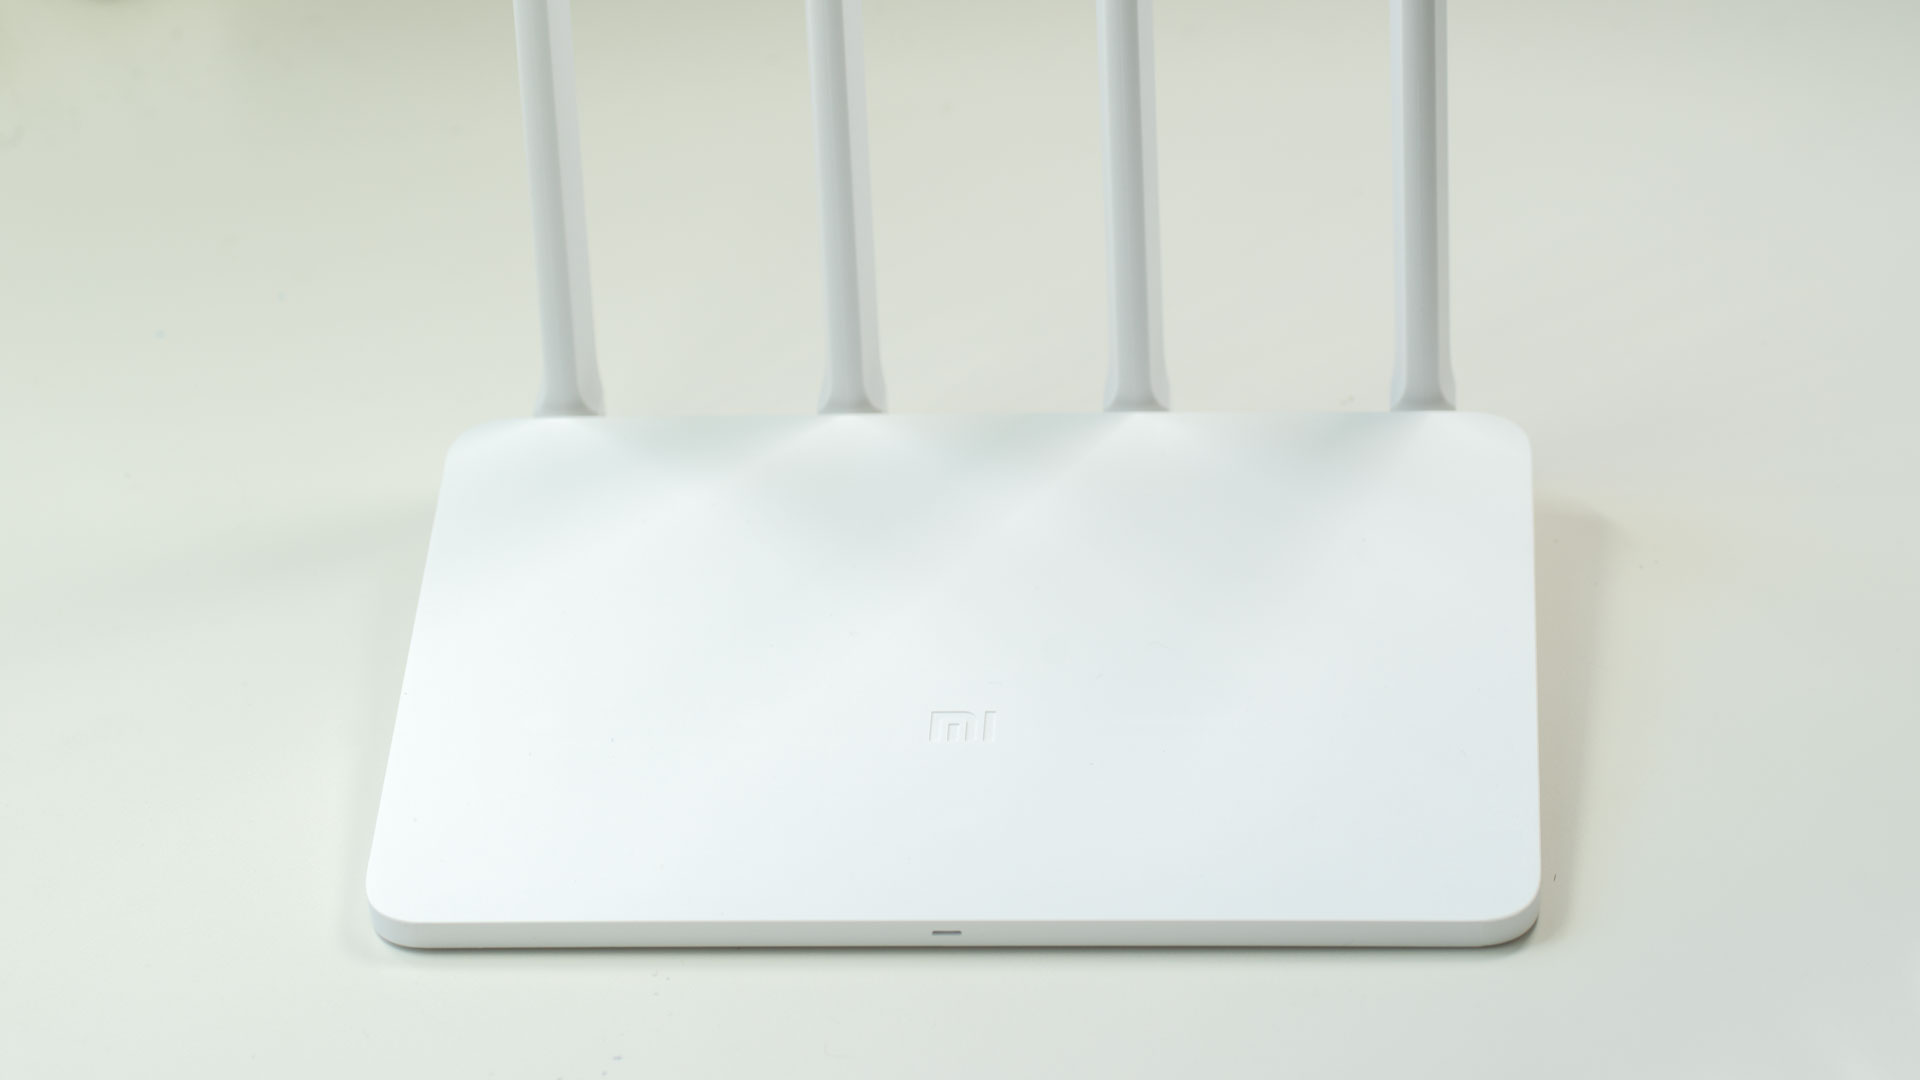 der xiaomi mi wifi router 3 im test der preis leistungs st rkste wlan router techtest. Black Bedroom Furniture Sets. Home Design Ideas